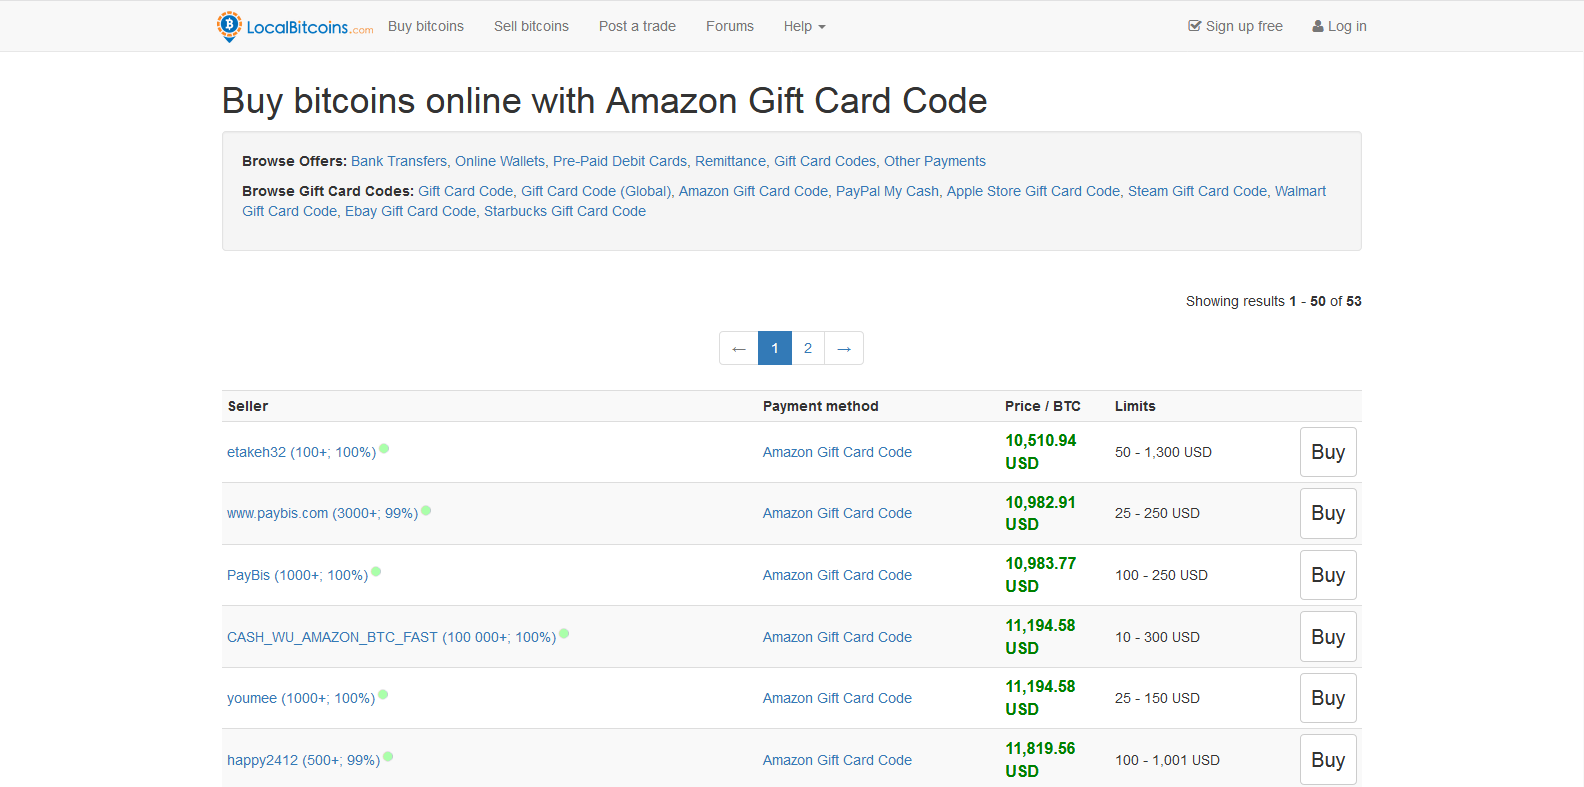 Pay with Amazon Gift Card at LocalBitcoins